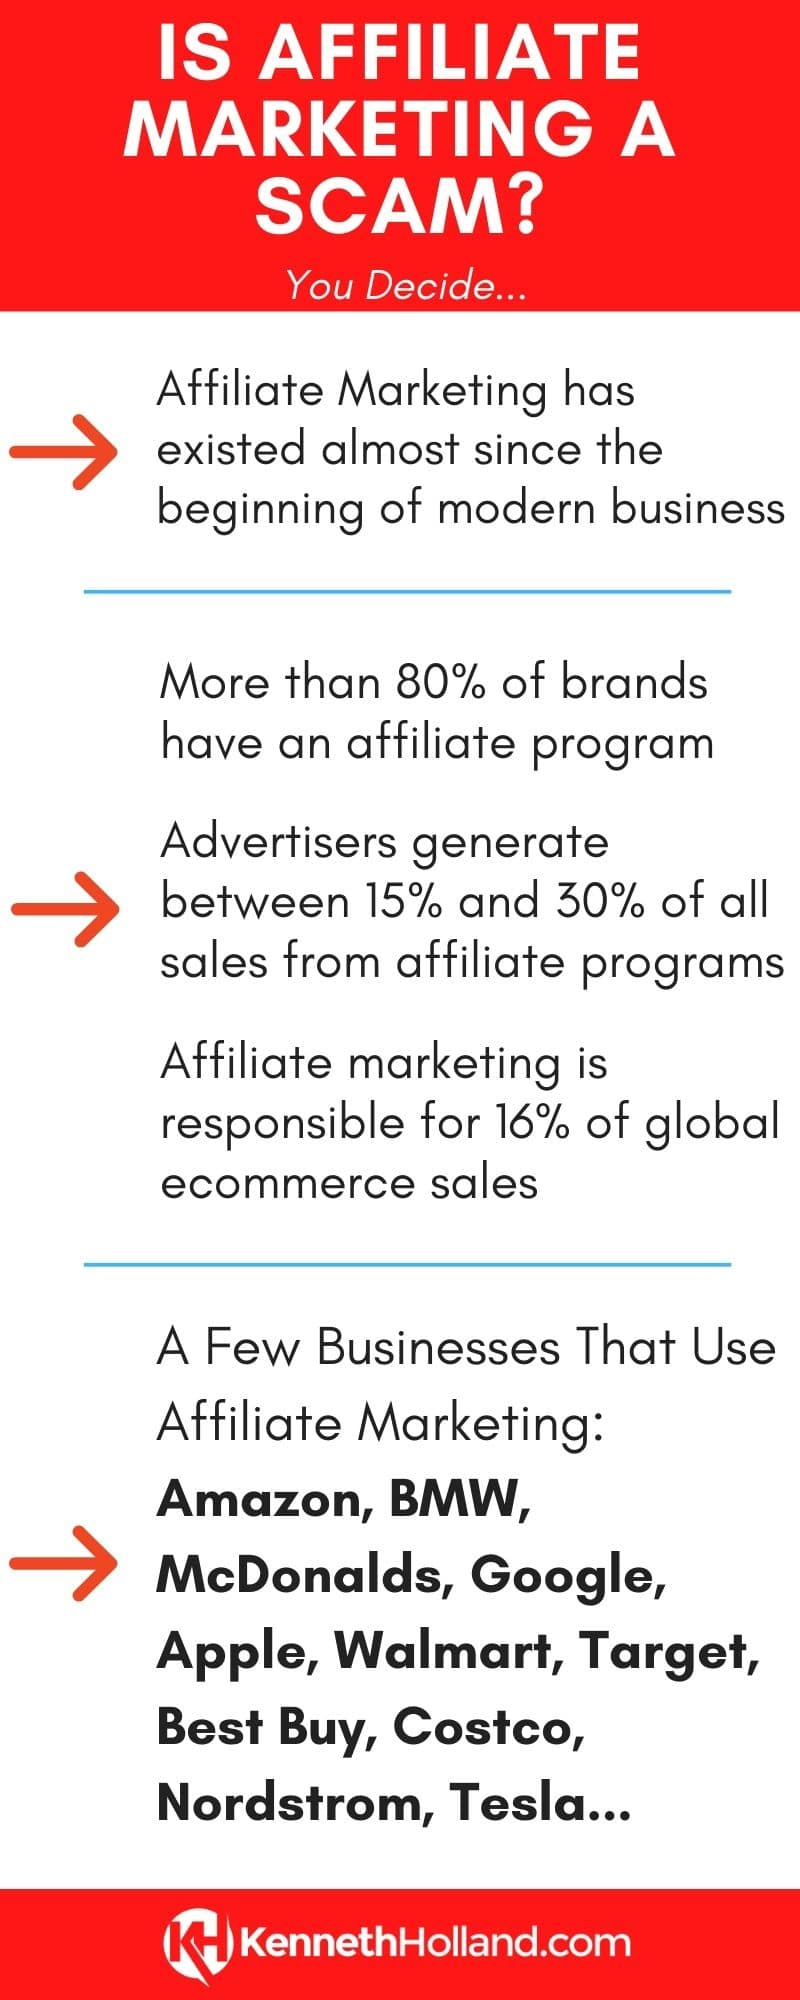 Is Affiliate Marketing a Scam - An Infographic